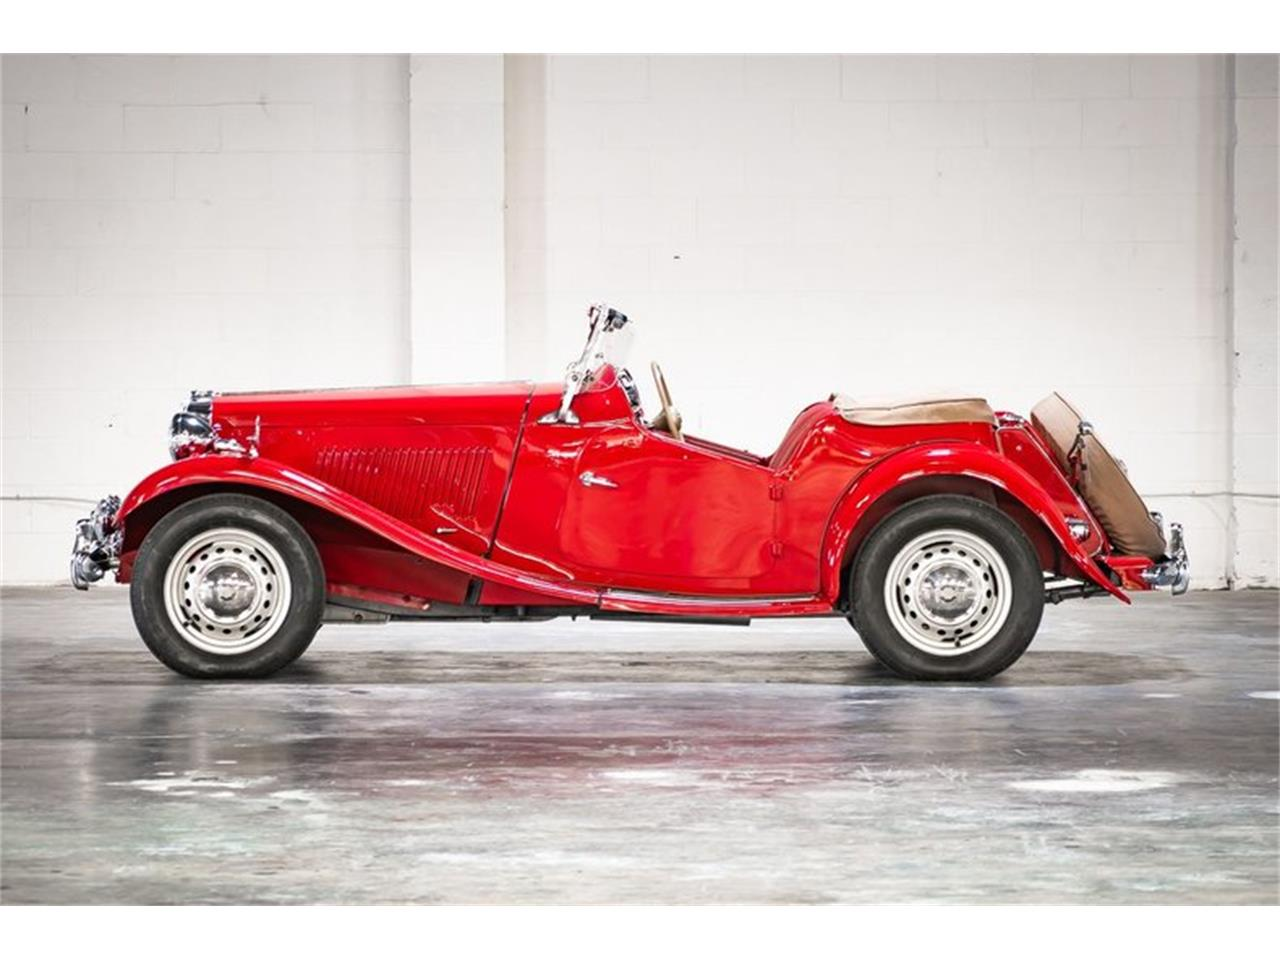 Large Picture of 1953 MG TD located in Mississippi Auction Vehicle Offered by Auction Assets Group - QQKX